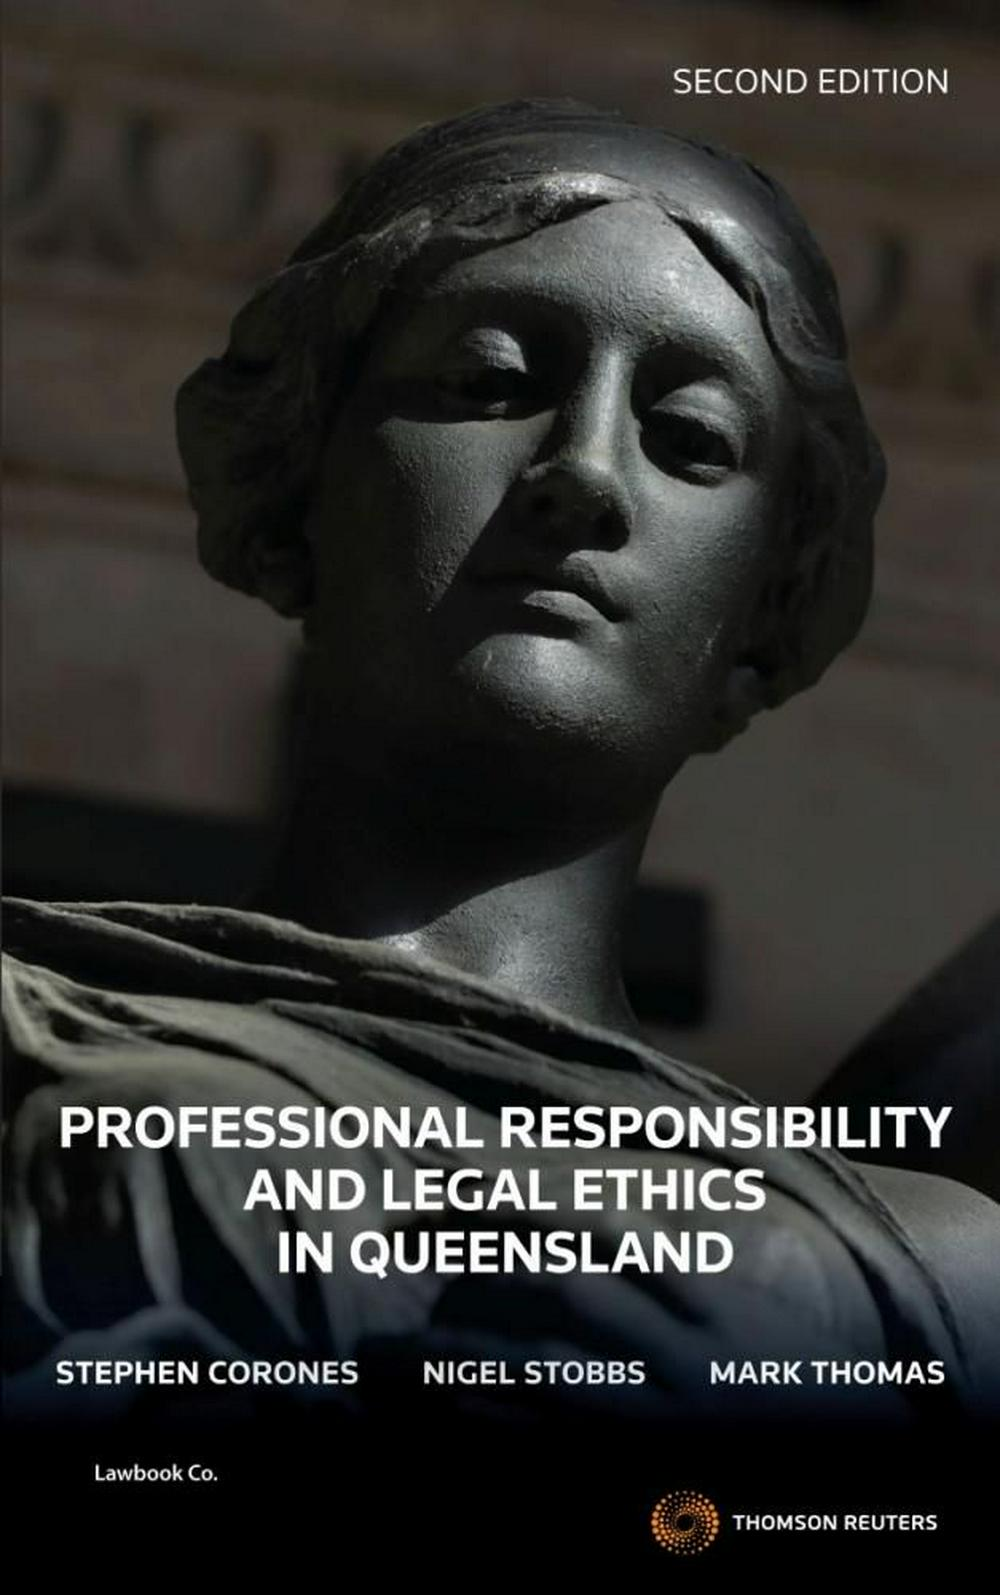 Professional Responsibility and Legal Ethics in Queensland